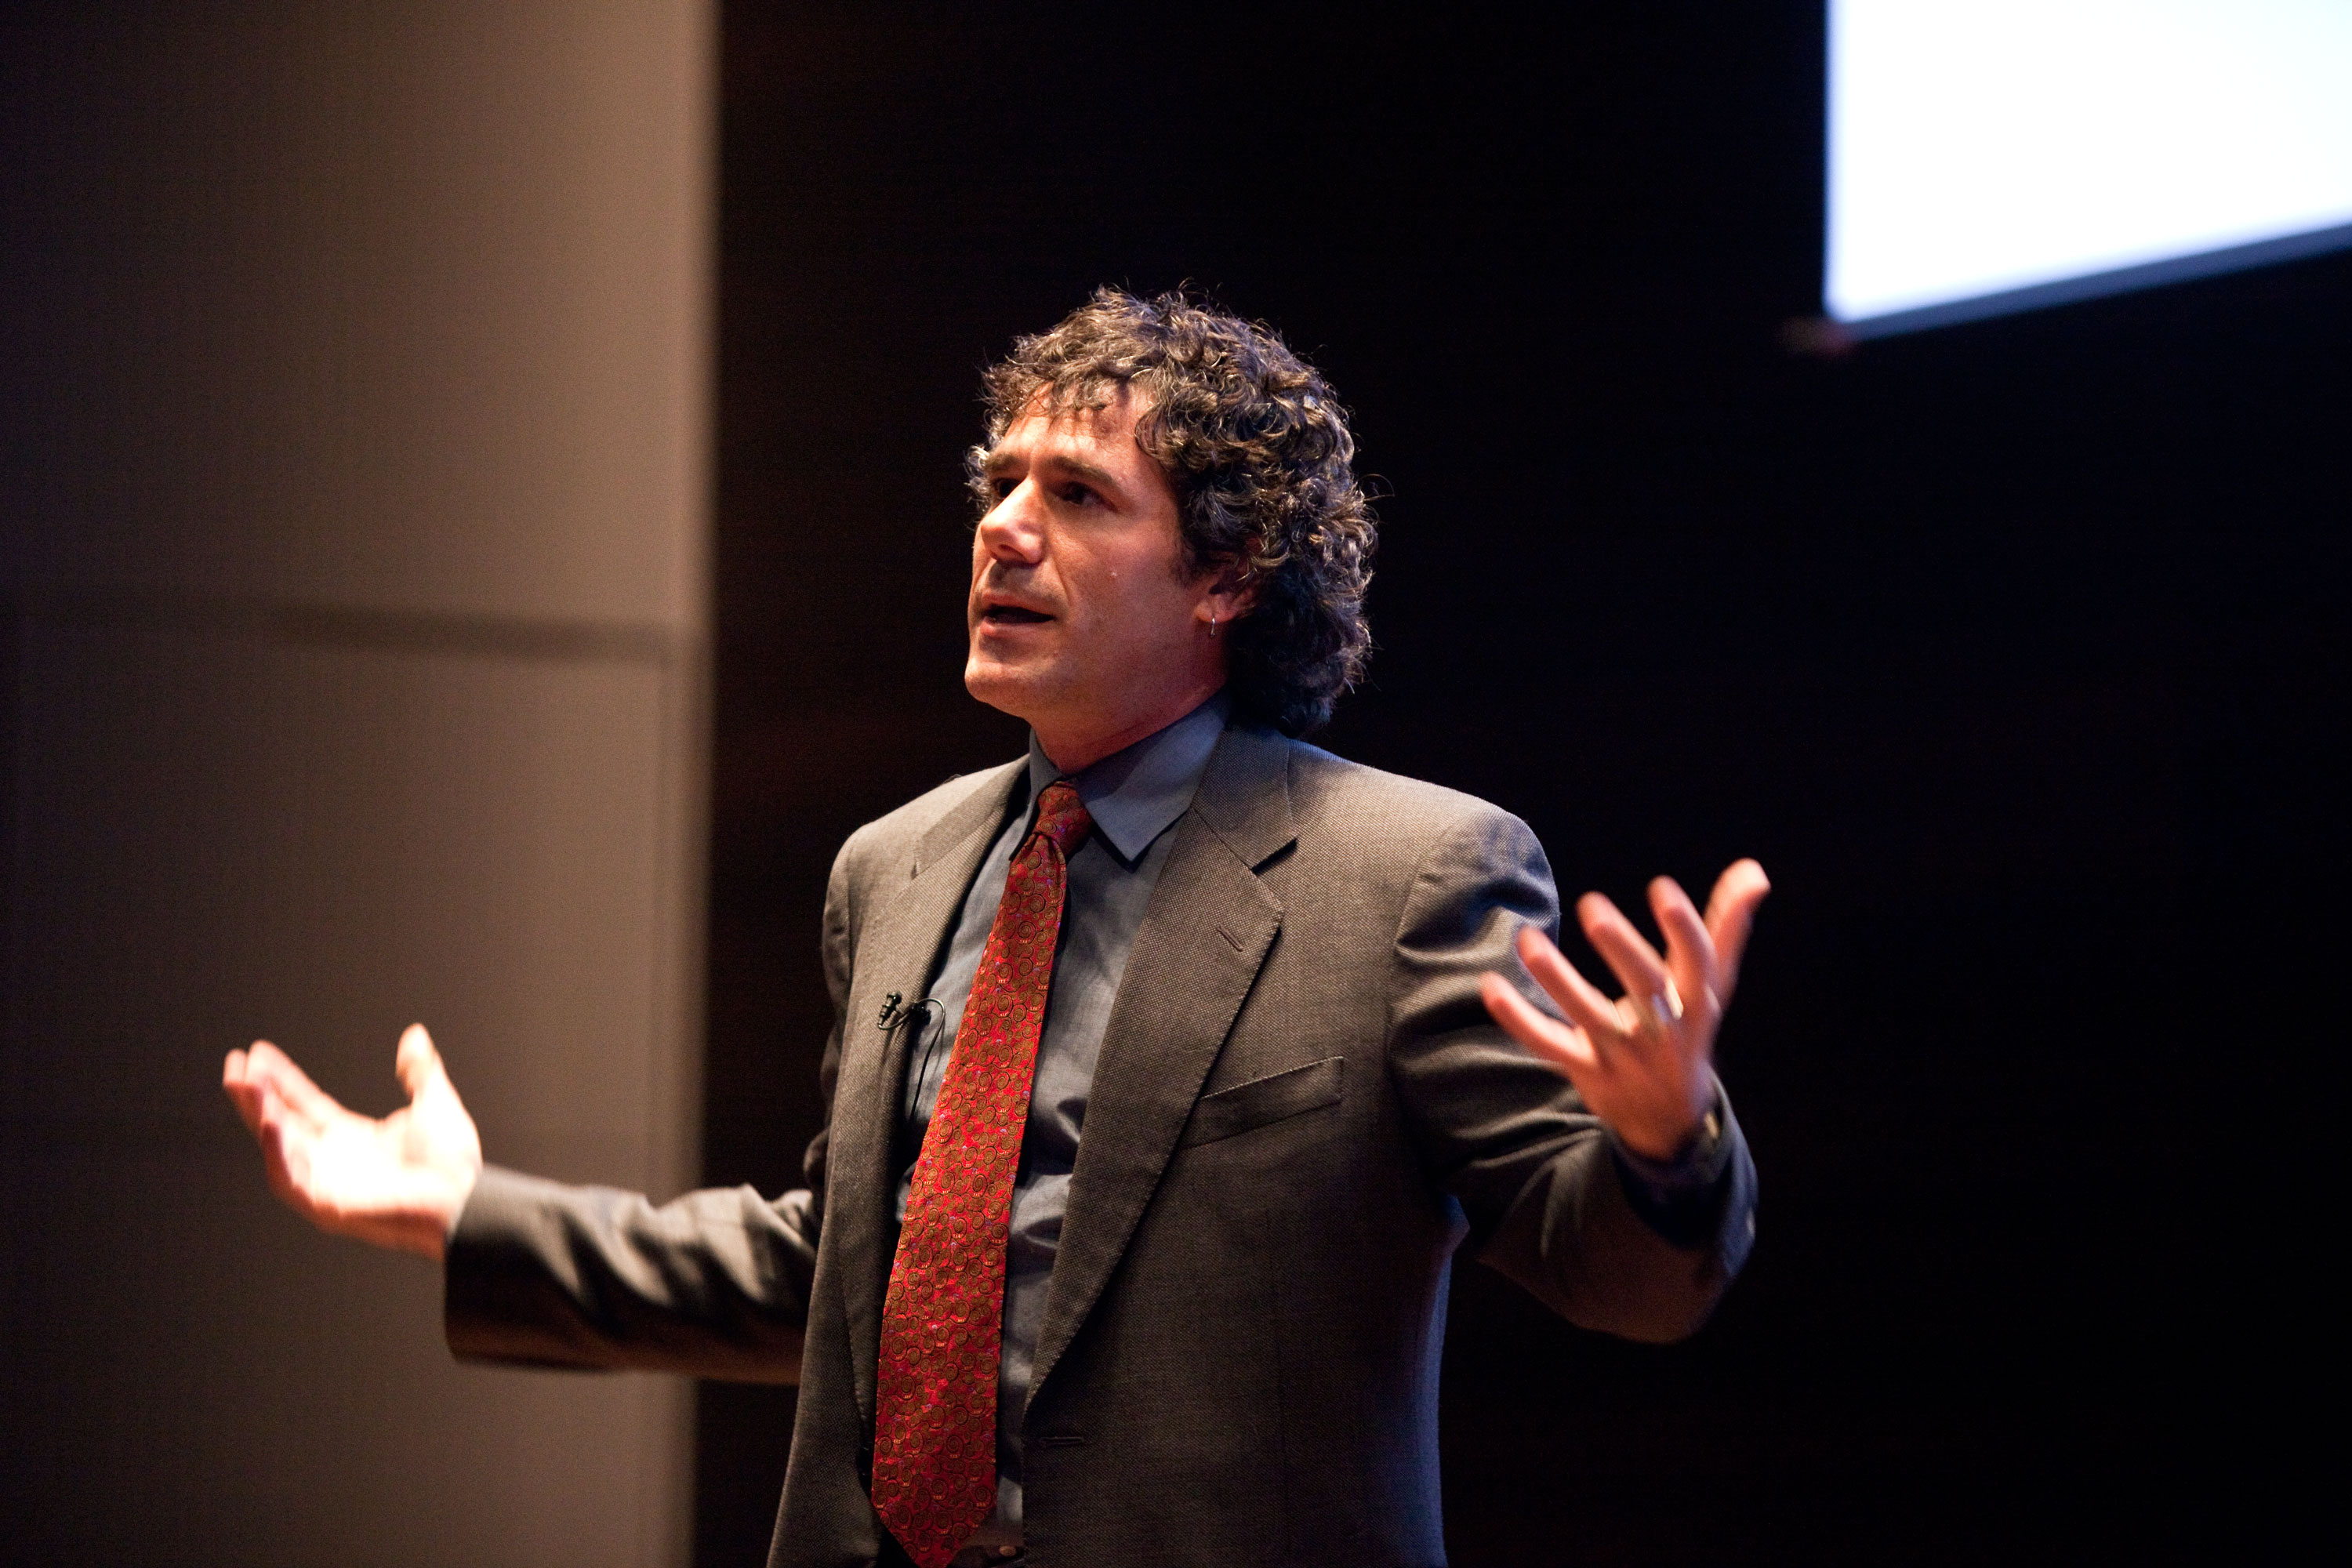 Marine ecologist Rafe Sagarin delivered a lecture at CIGI last Thursday. (Photo by Cristina Rucchetta)